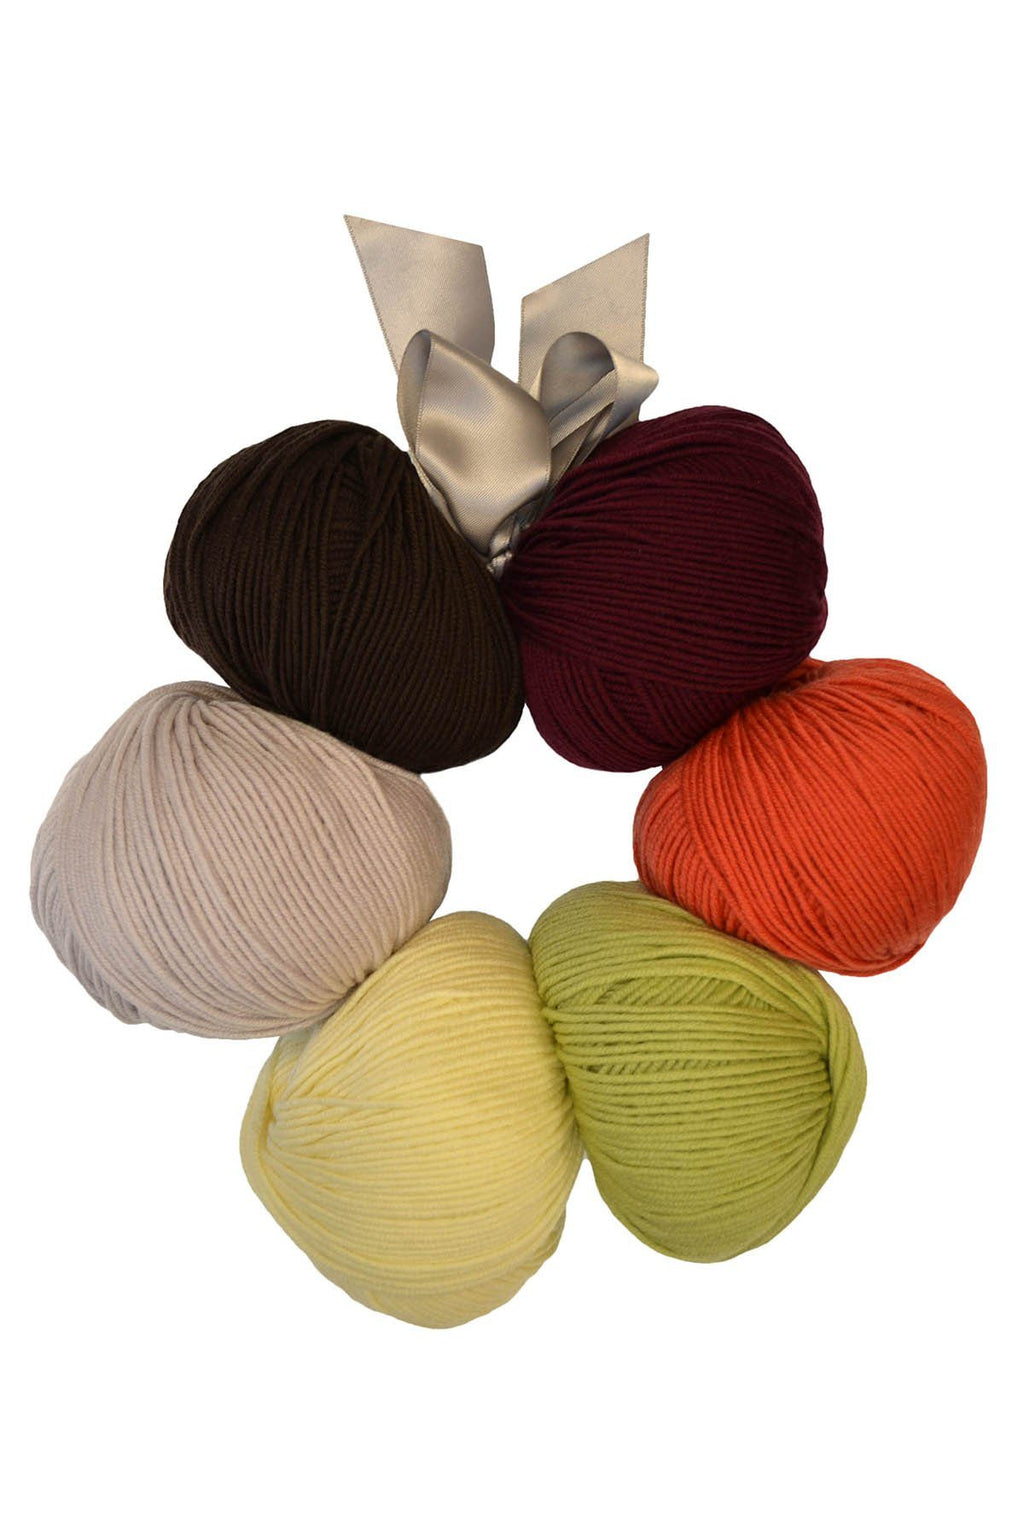 Dona Color Kits - Spice Box Kit Universal Yarn